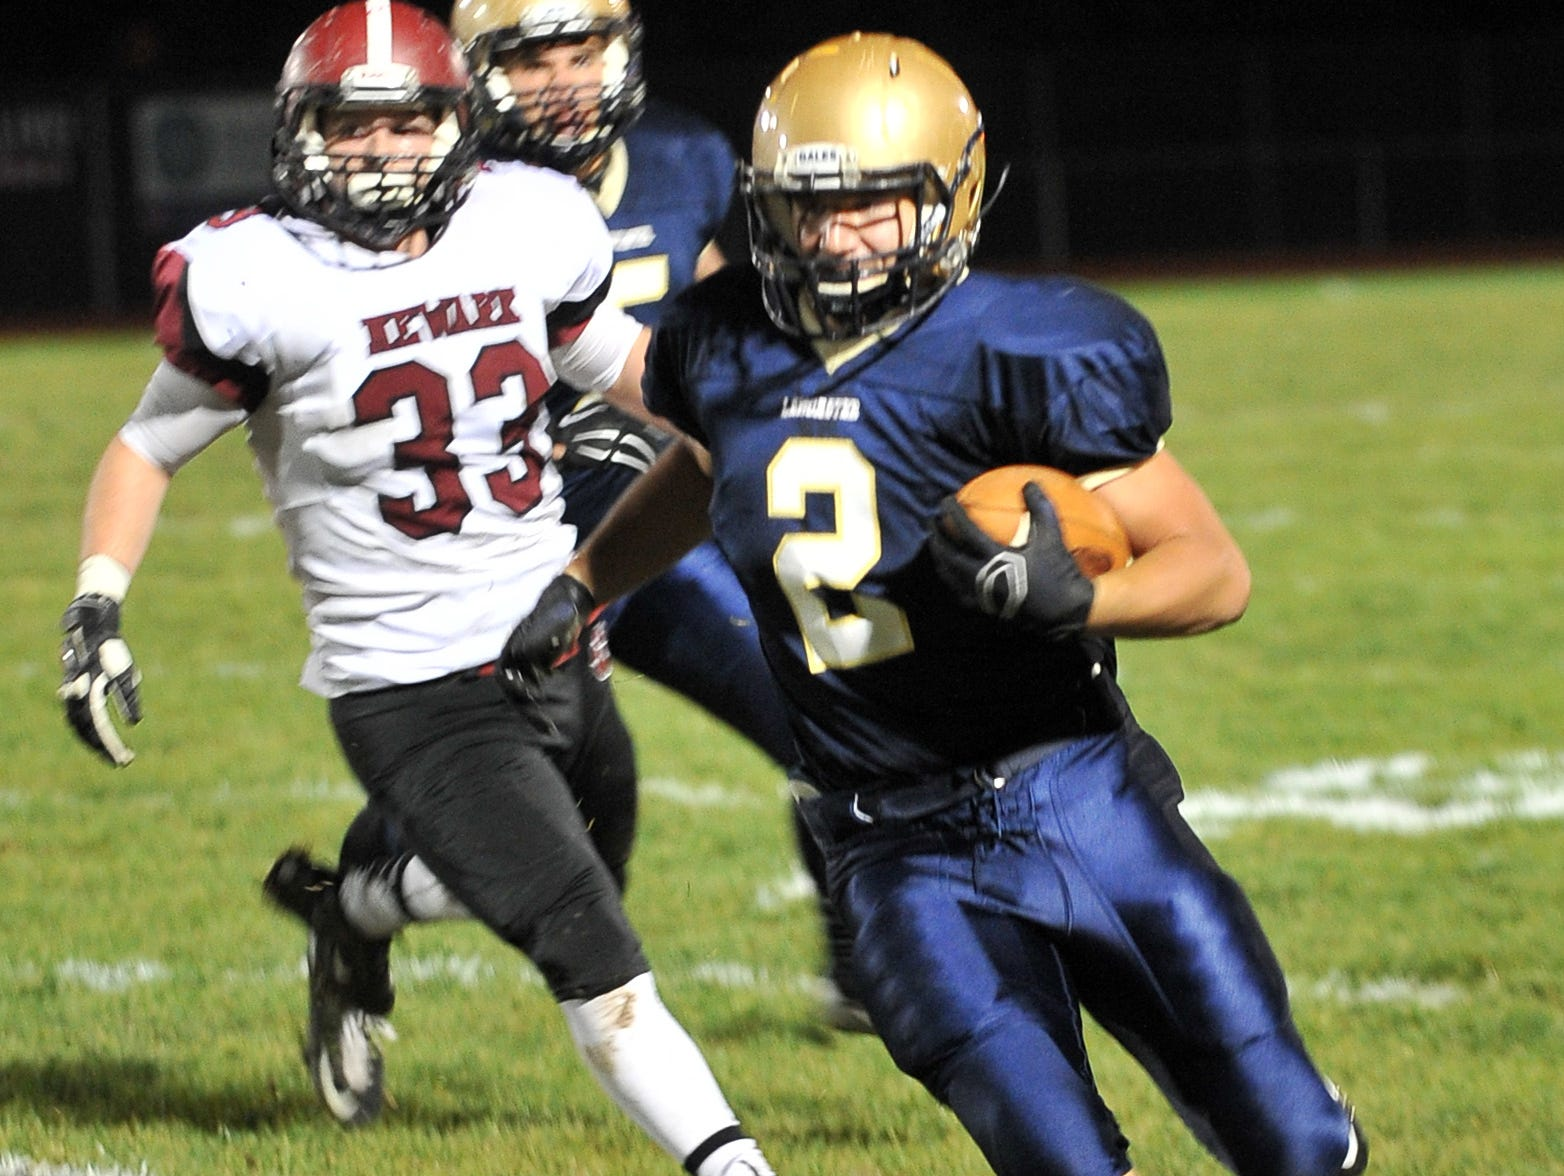 Lancaster's Shea Goss runs the ball early in first quarter of the the Golden Gales game Friday night against Newark at Fulton Field in Lancaster. Lancaster won the game 38-7.